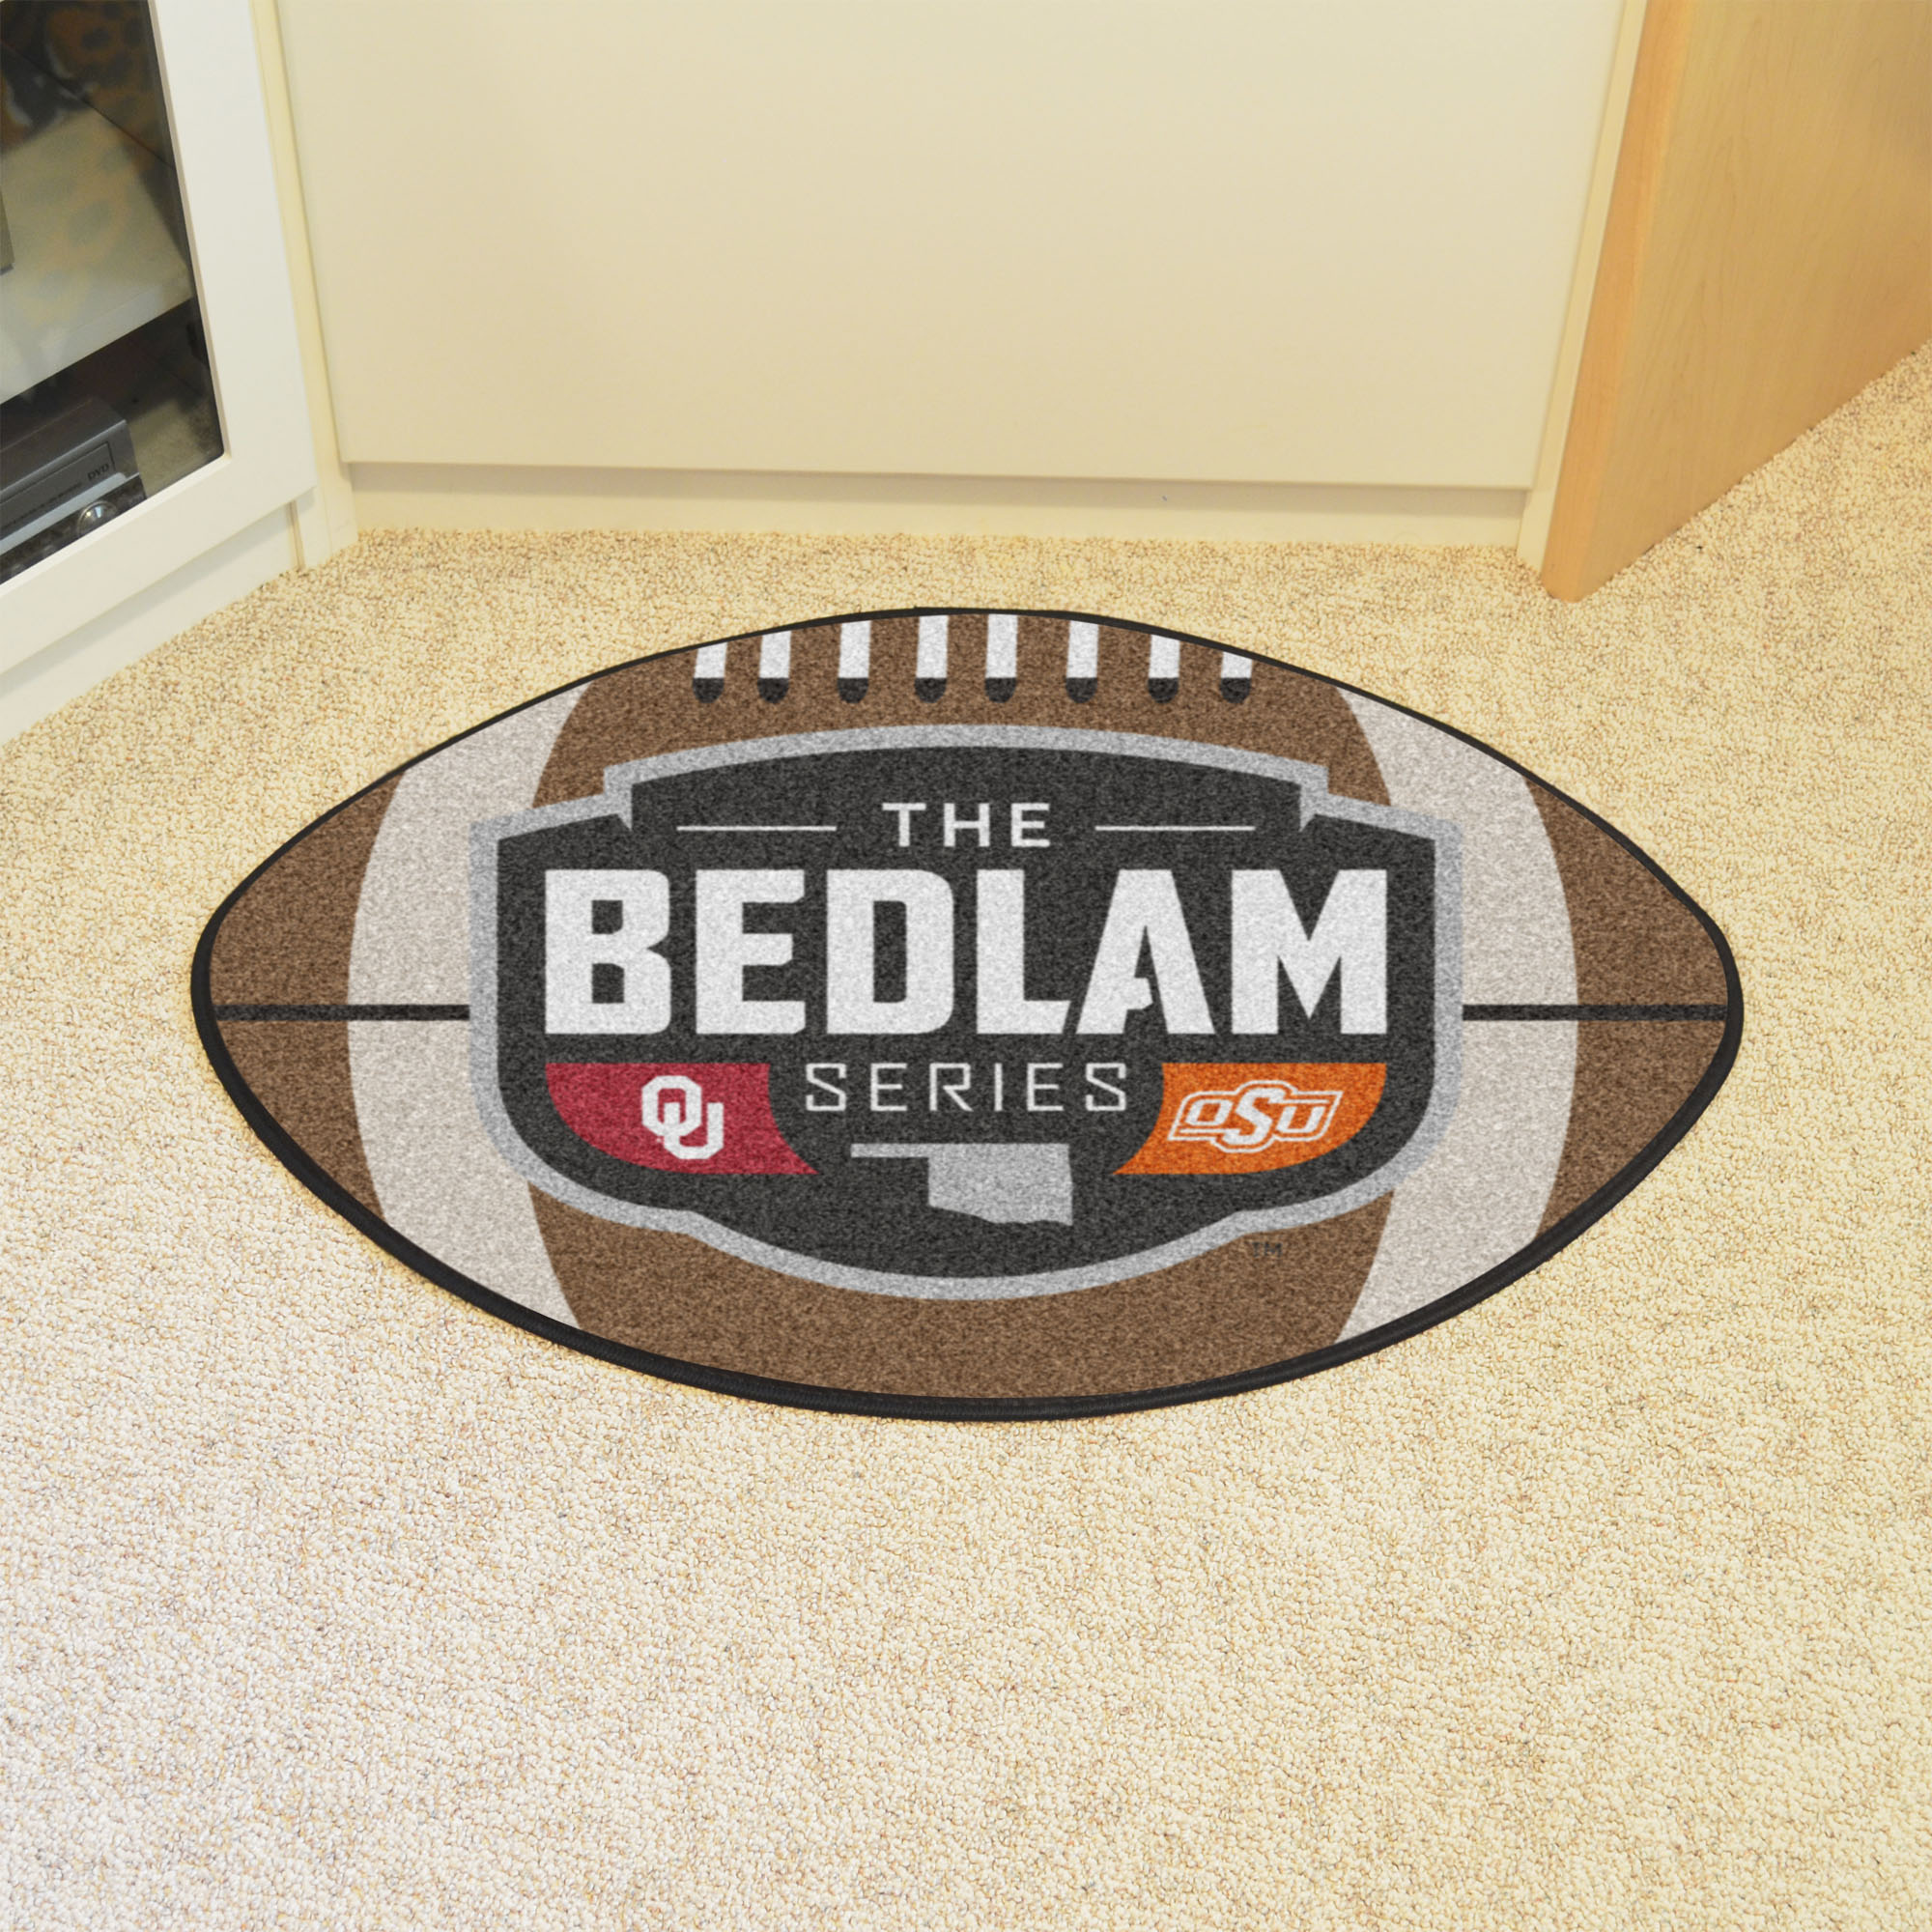 Bedlam Series Ball Shaped Area Rugs (Ball Shaped Area Rugs: Football)